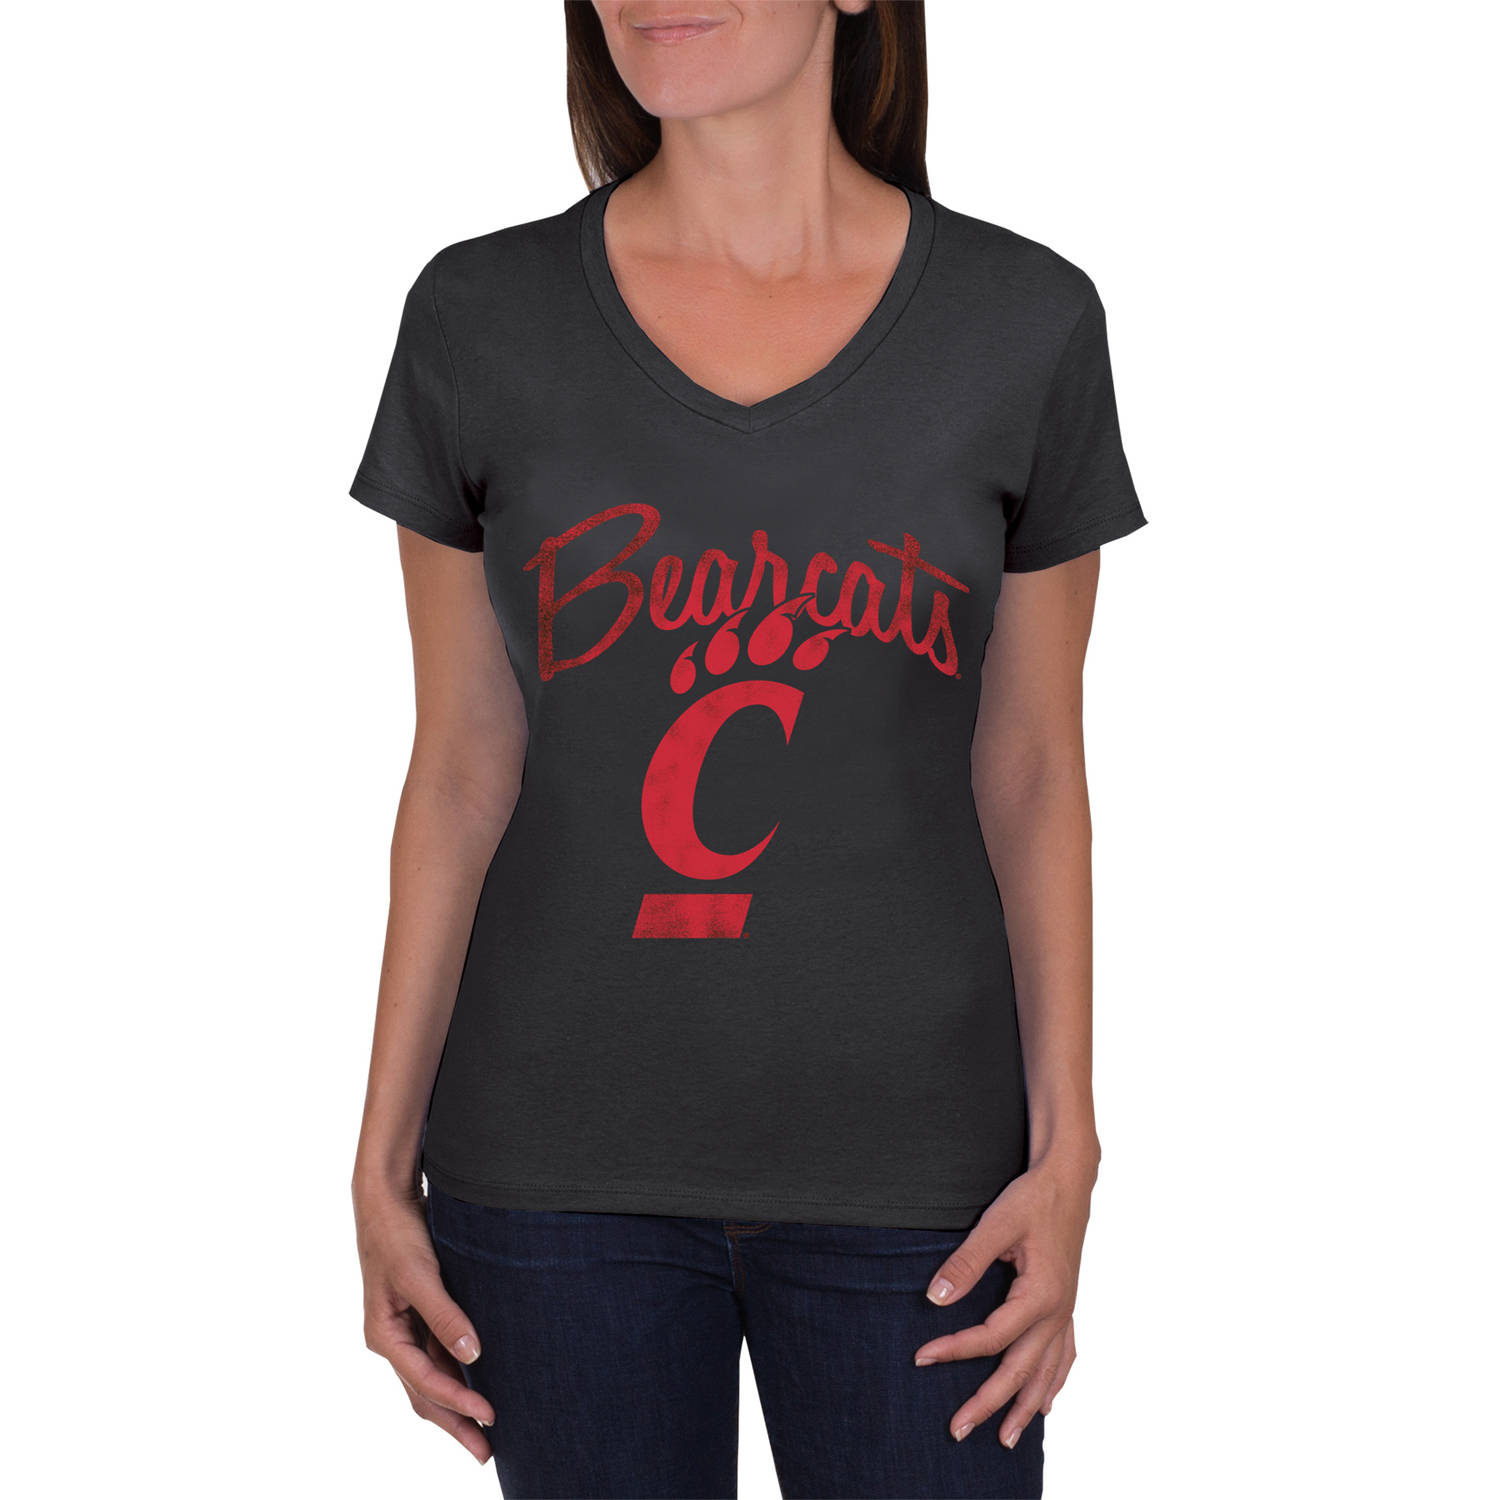 NCAA Cincinnati Bearcats Women's V-Neck Tunic Cotton Tee Shirt